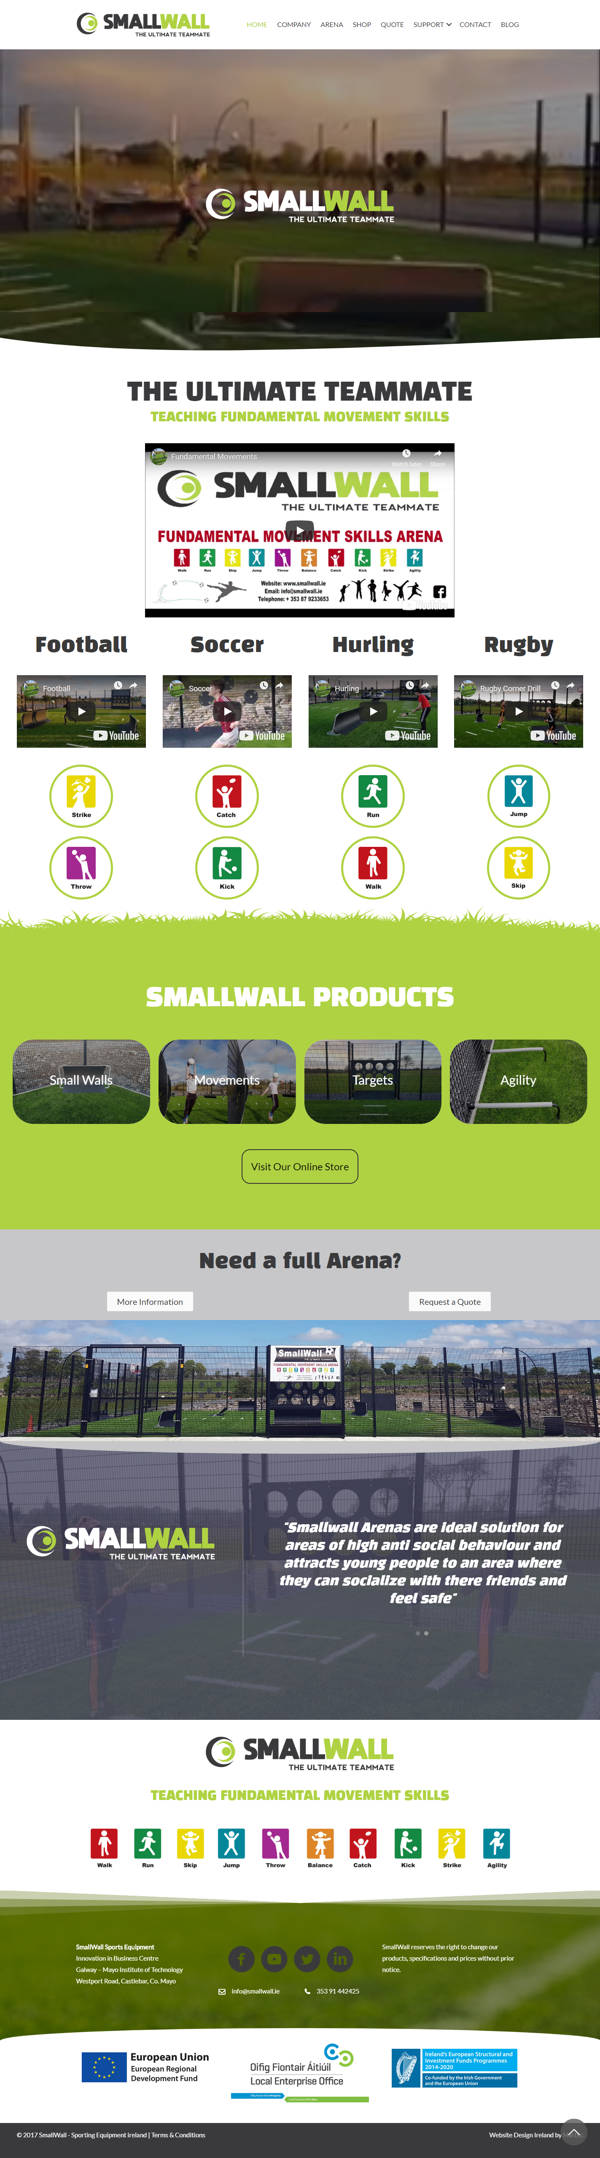 SmallWall – Sporting Equipment ireland